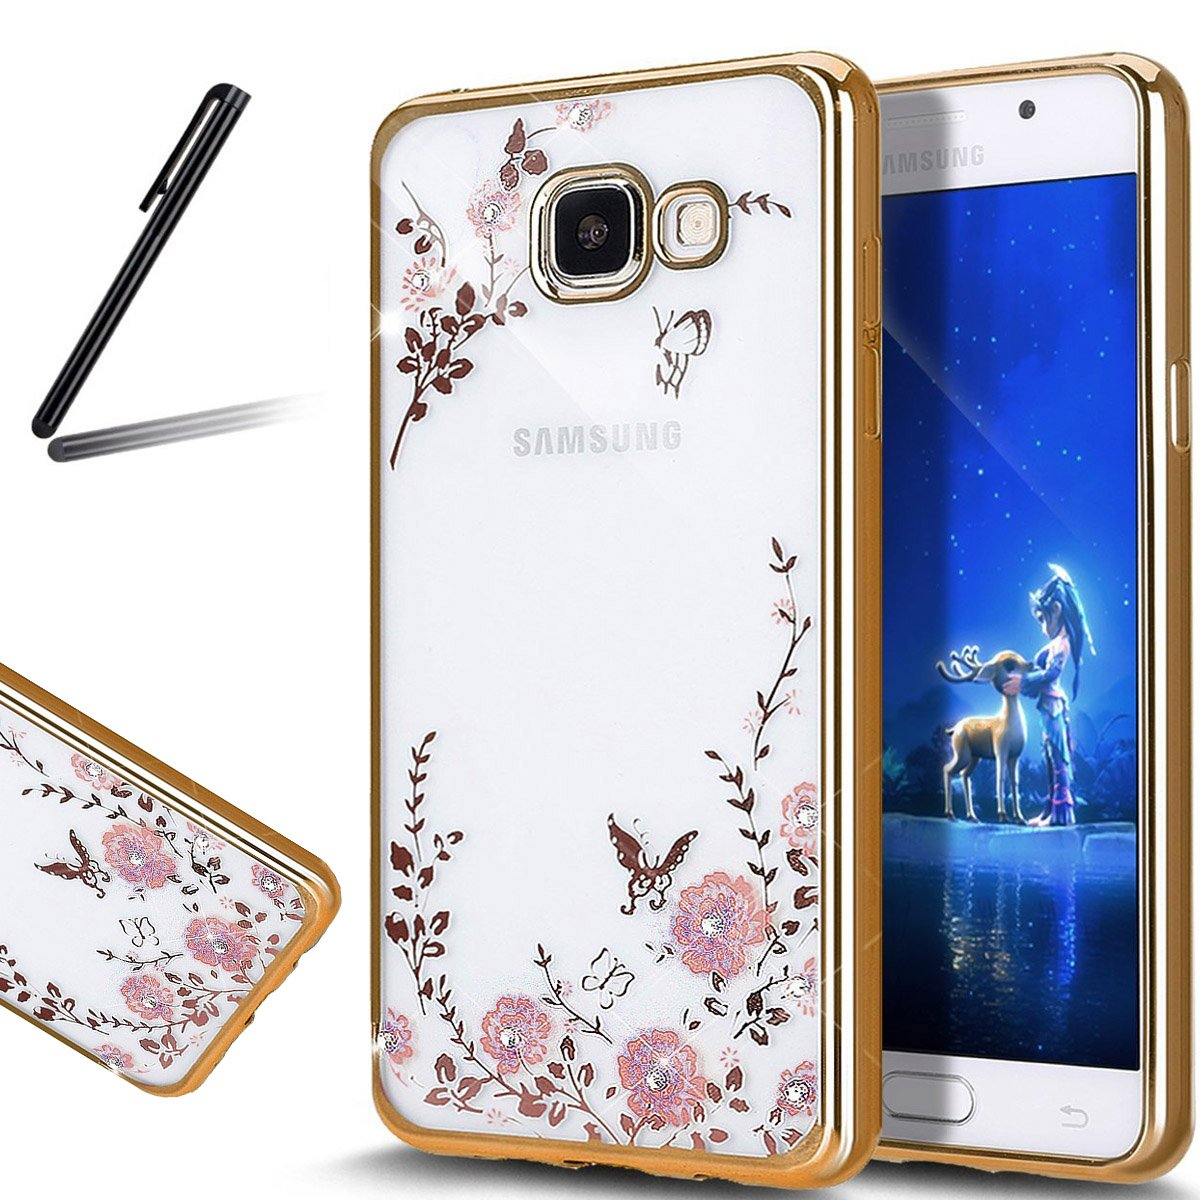 Galaxy A5 2017 Case, Galaxy A5 2017 Cover, SKYMARS Electroplating Butterfly Flower Bling Glitter Diamond Clear TPU Back Transparent Soft Flexible Silicone Bumper Protective Case For Samsung Galaxy A5 2017 (SM-A520) - Gold